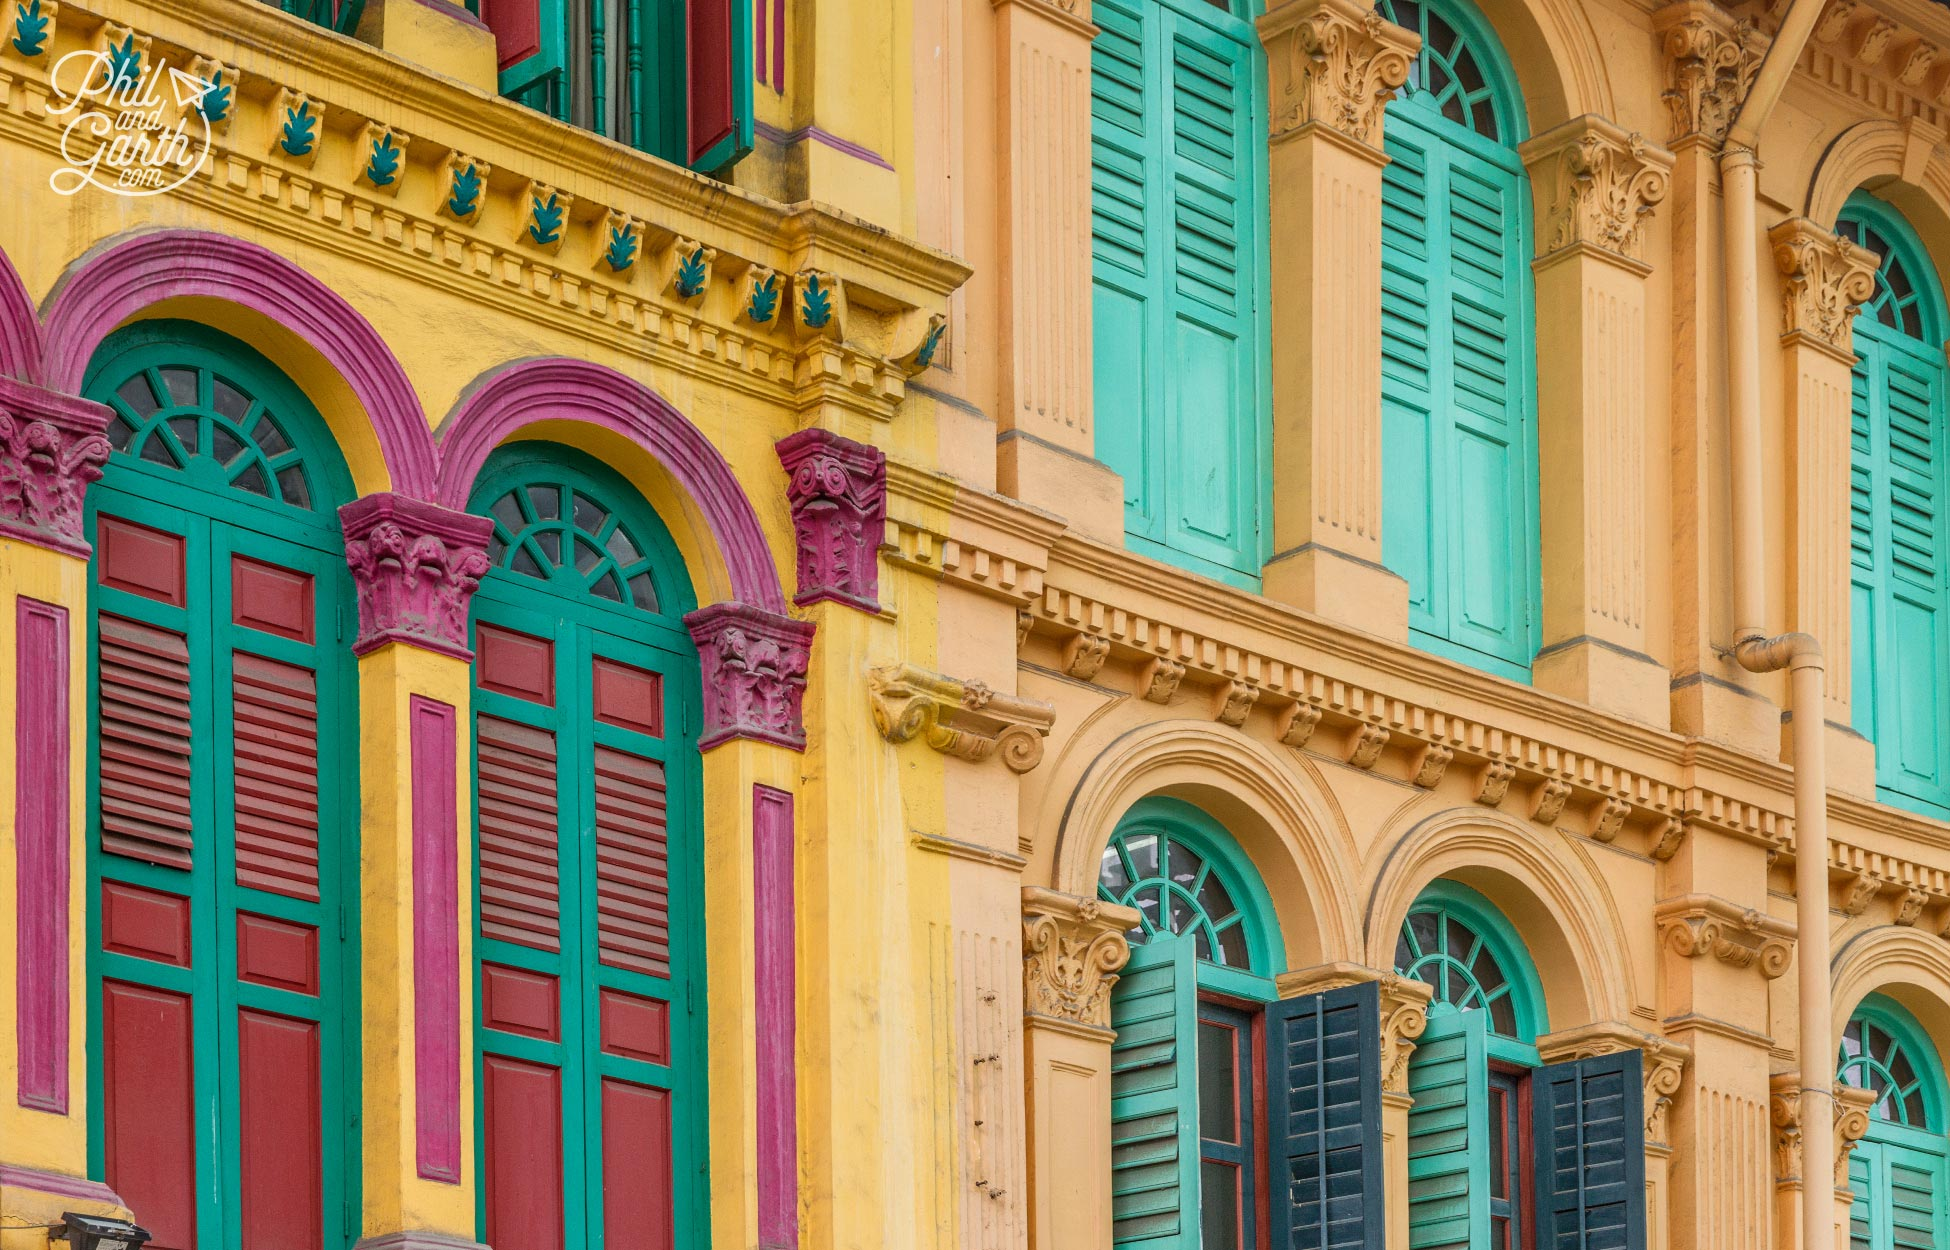 Shophouses come in all sorts of colours